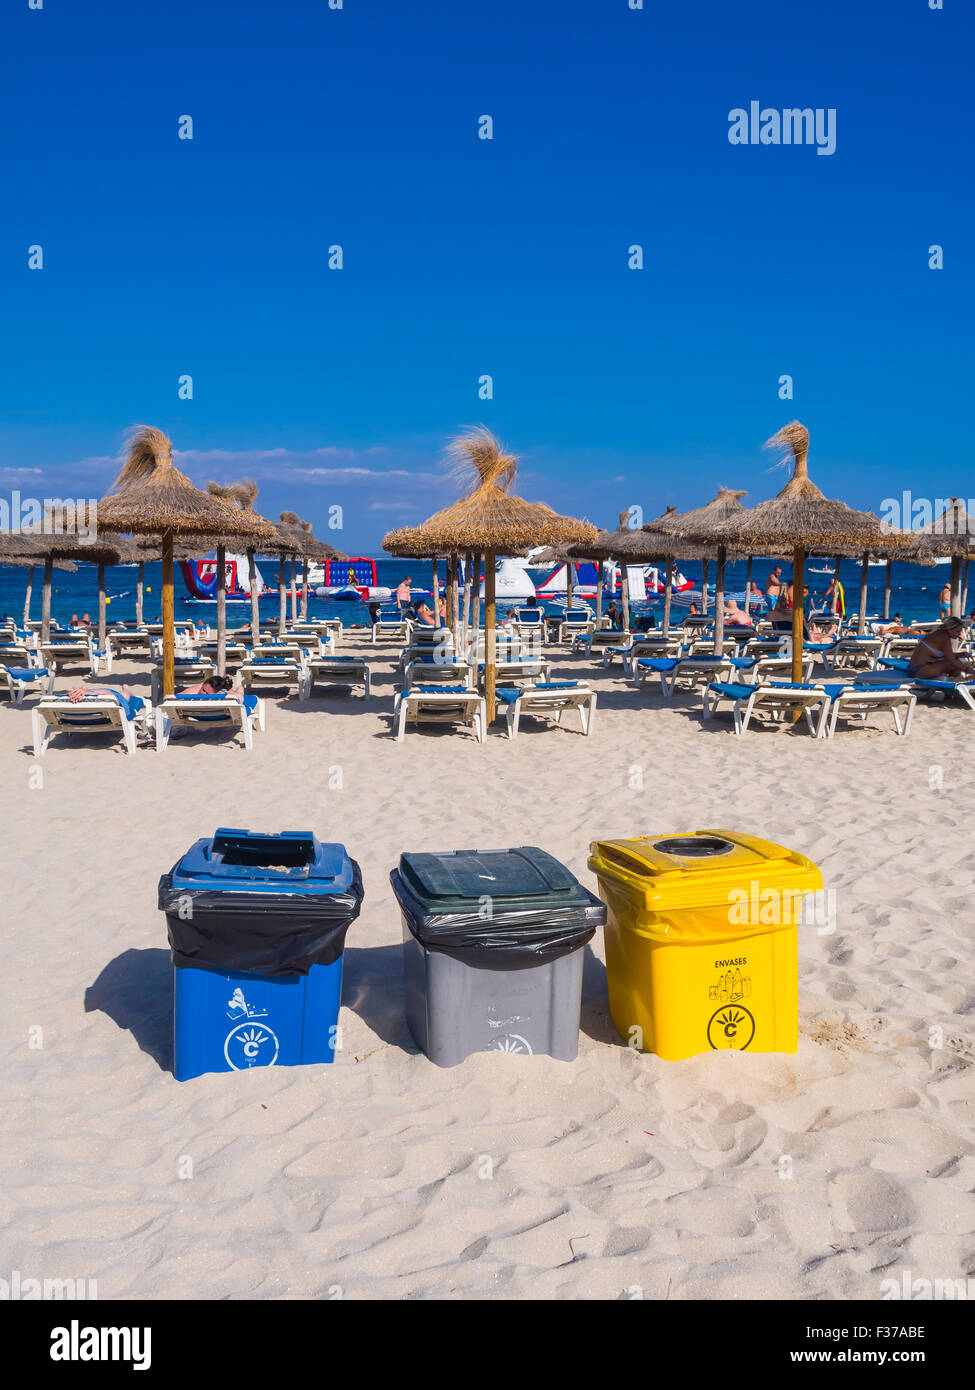 Recycling, trash cans on the beach, Magaluf, Majorca, Balearic Islands, Spain - Stock Image